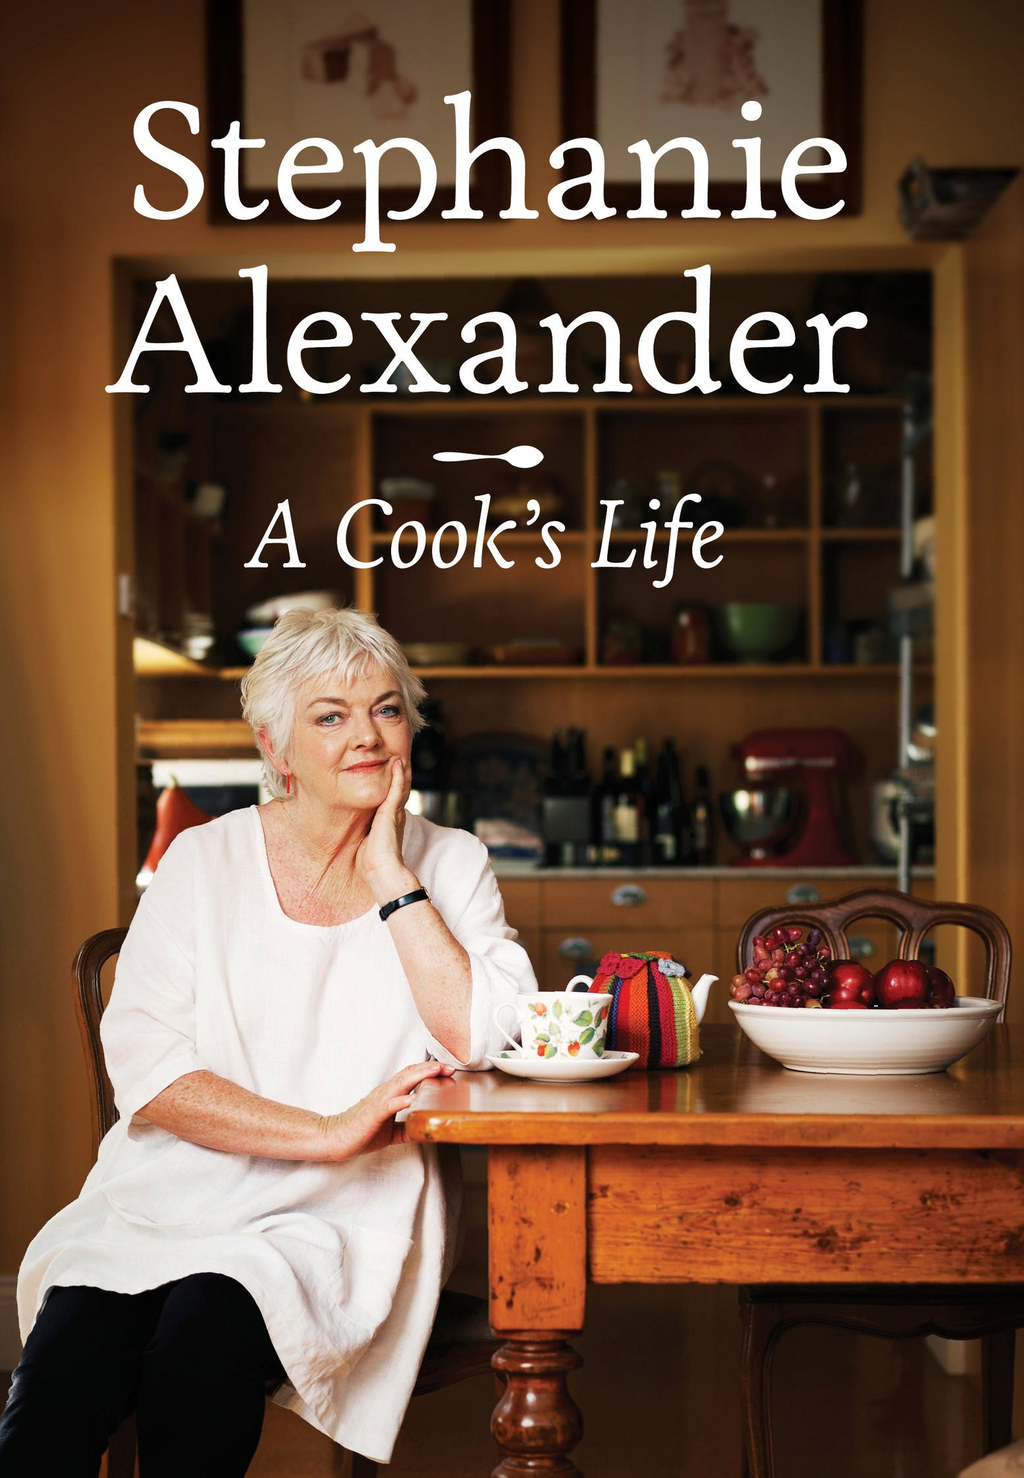 A Cook's Life By: Stephanie Alexander